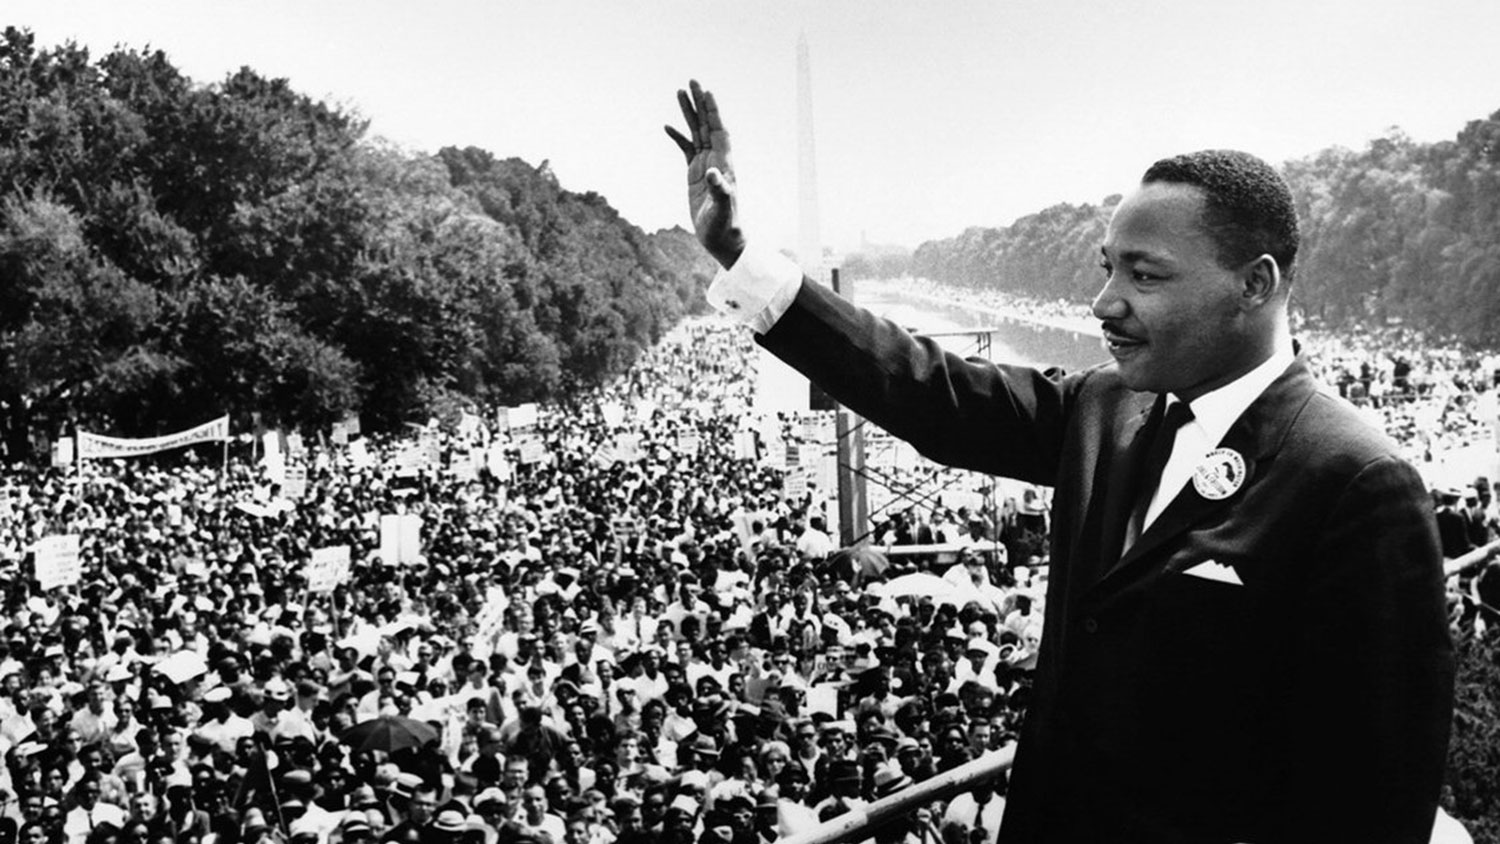 Martin Luther King, Jr. in Washington, D.C.